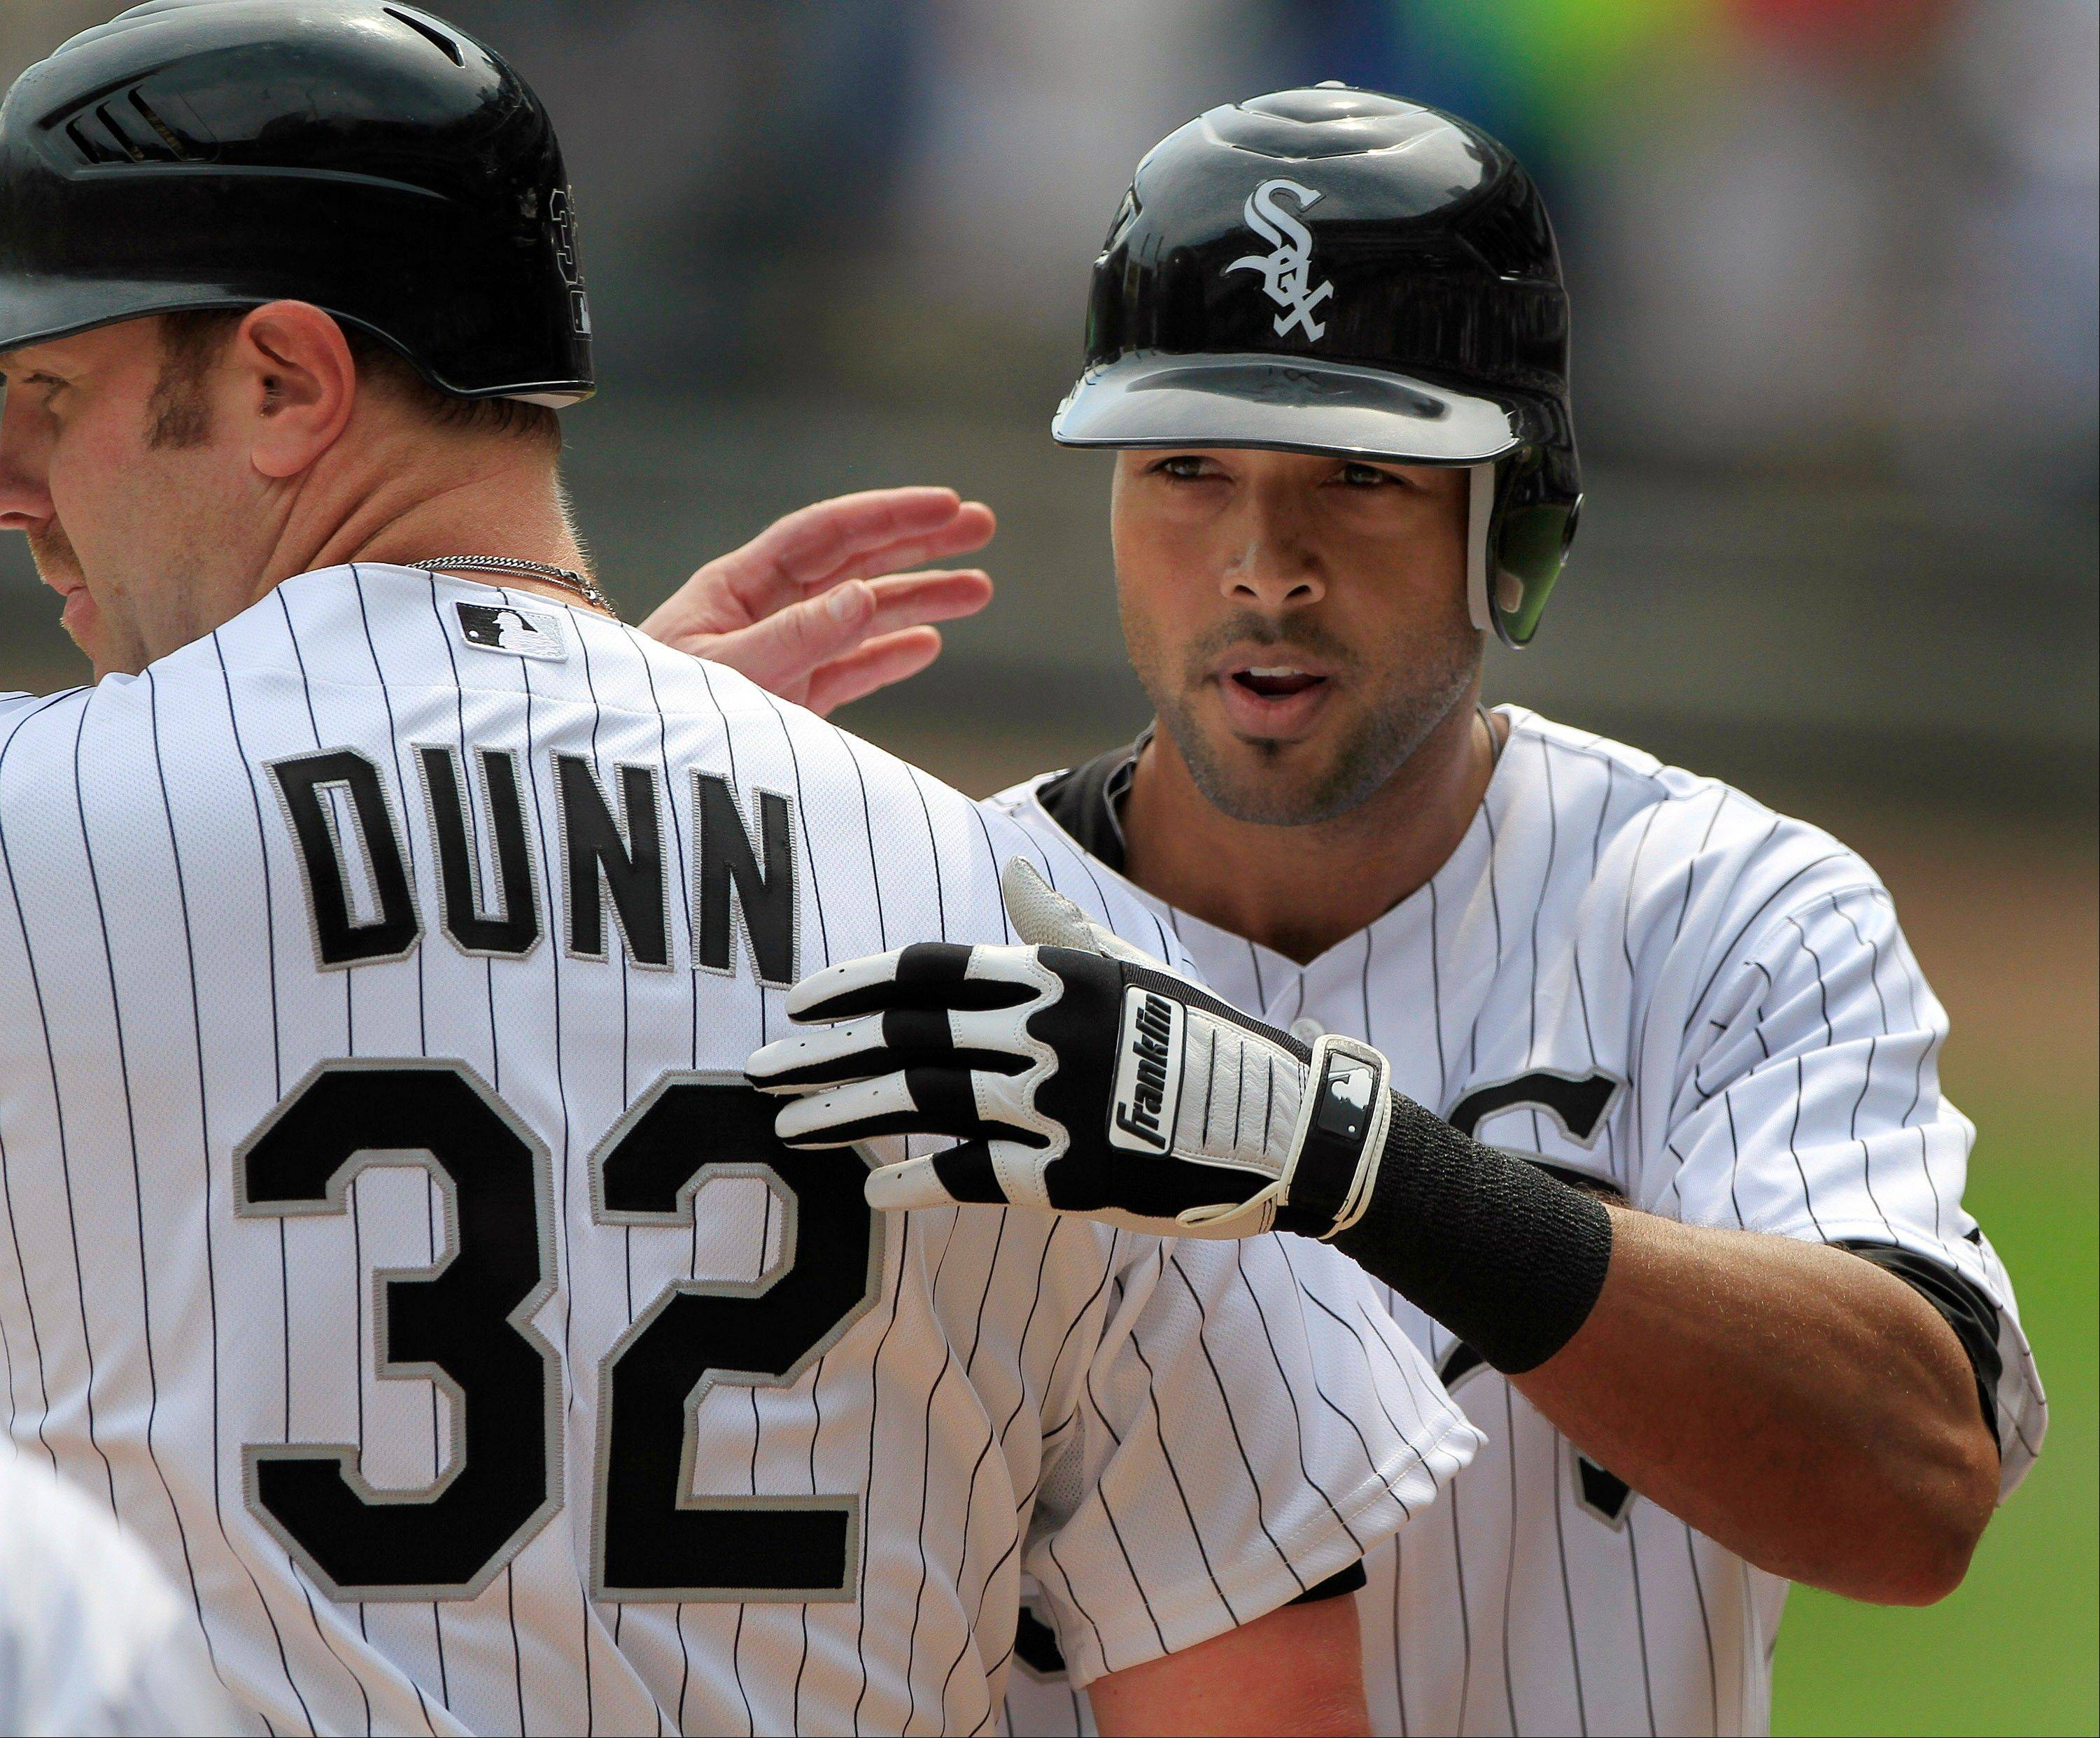 Chicago White Sox's Alex Rios, right, congratulated by teammate Adam Dunn after hitting a grand slam against the Minnesota Twins during the first inning of a baseball game, Wednesday, Sept. 5, 2012, in Chicago. (AP Photo/John Smierciak)